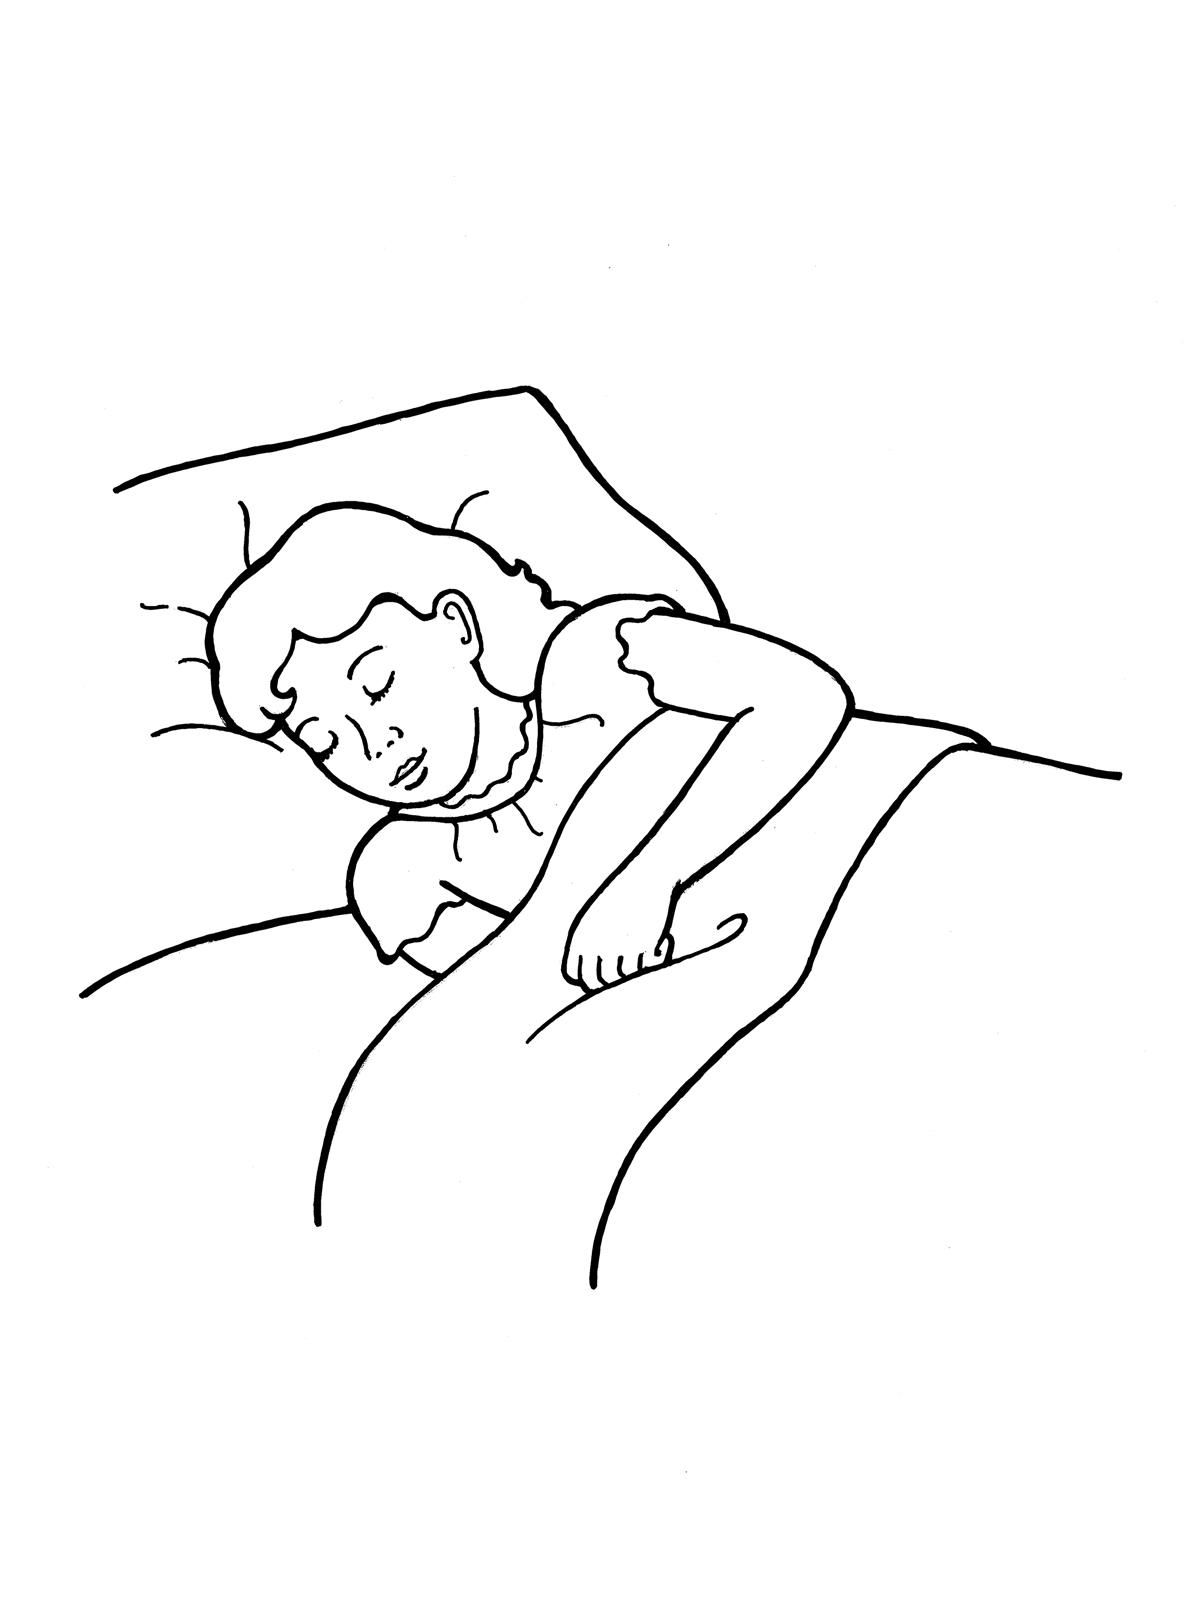 sleep clipart black and white 4  u00bb clipart station